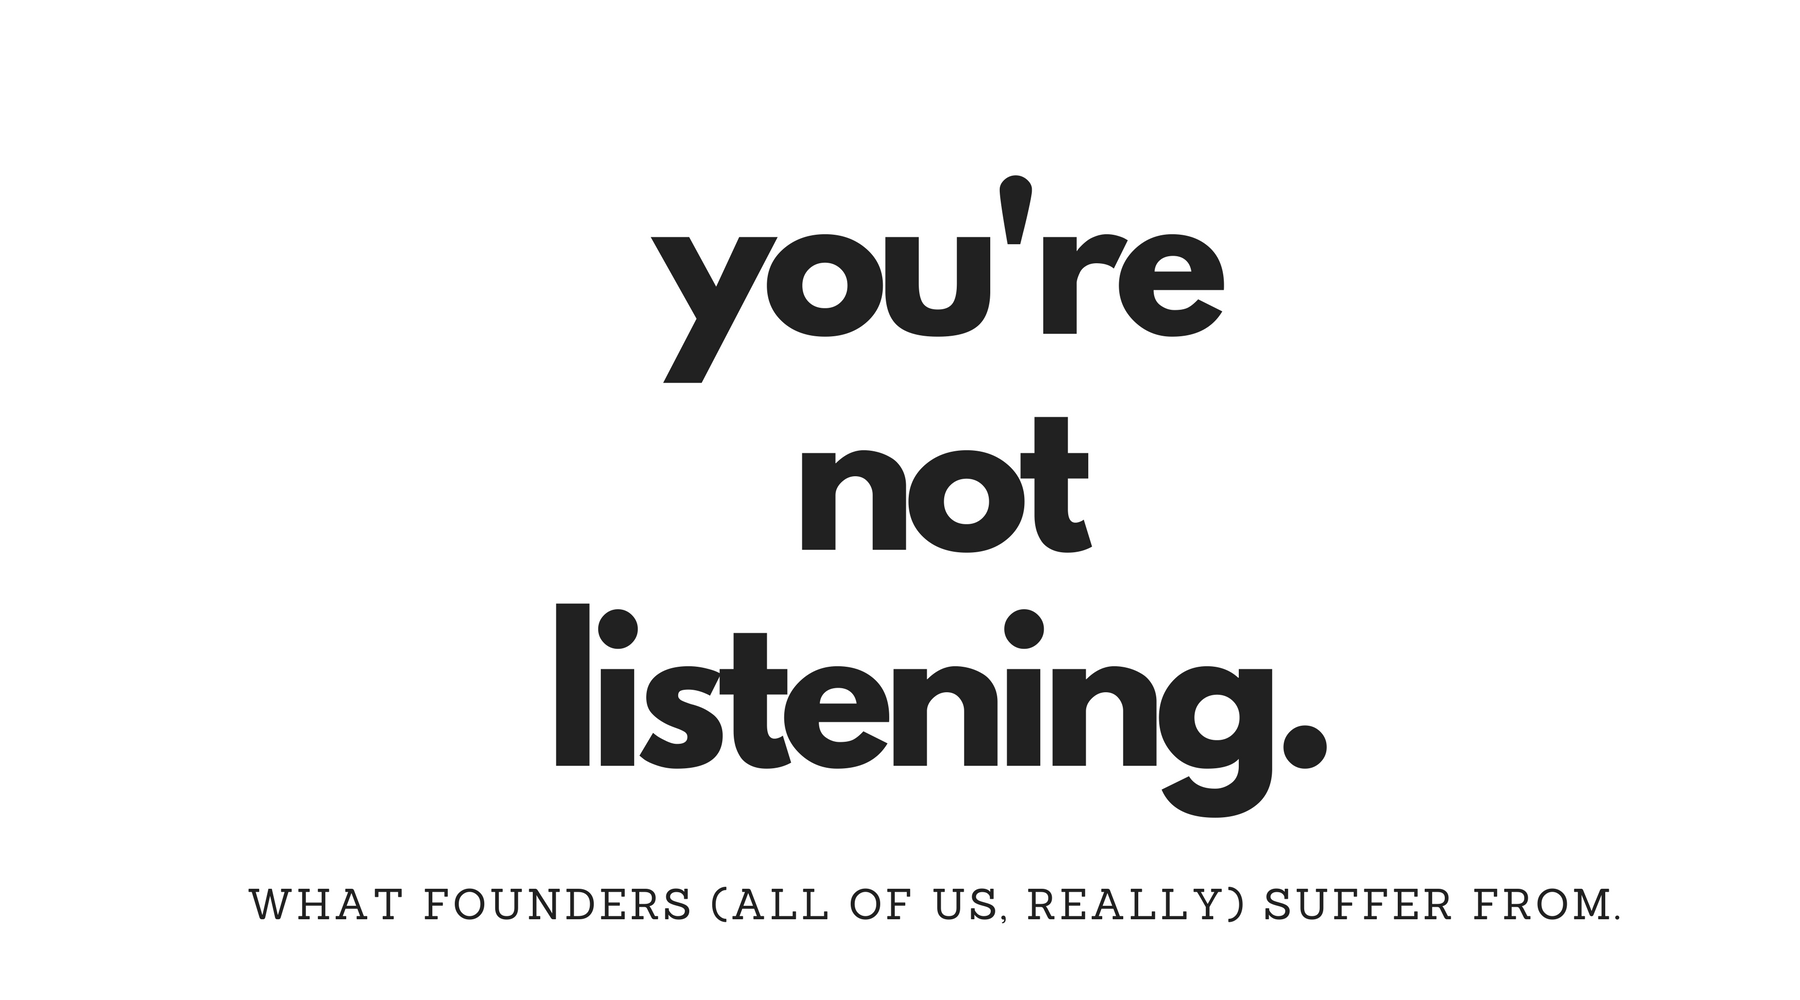 StartUps have trouble really hearing what early adopters have to say.